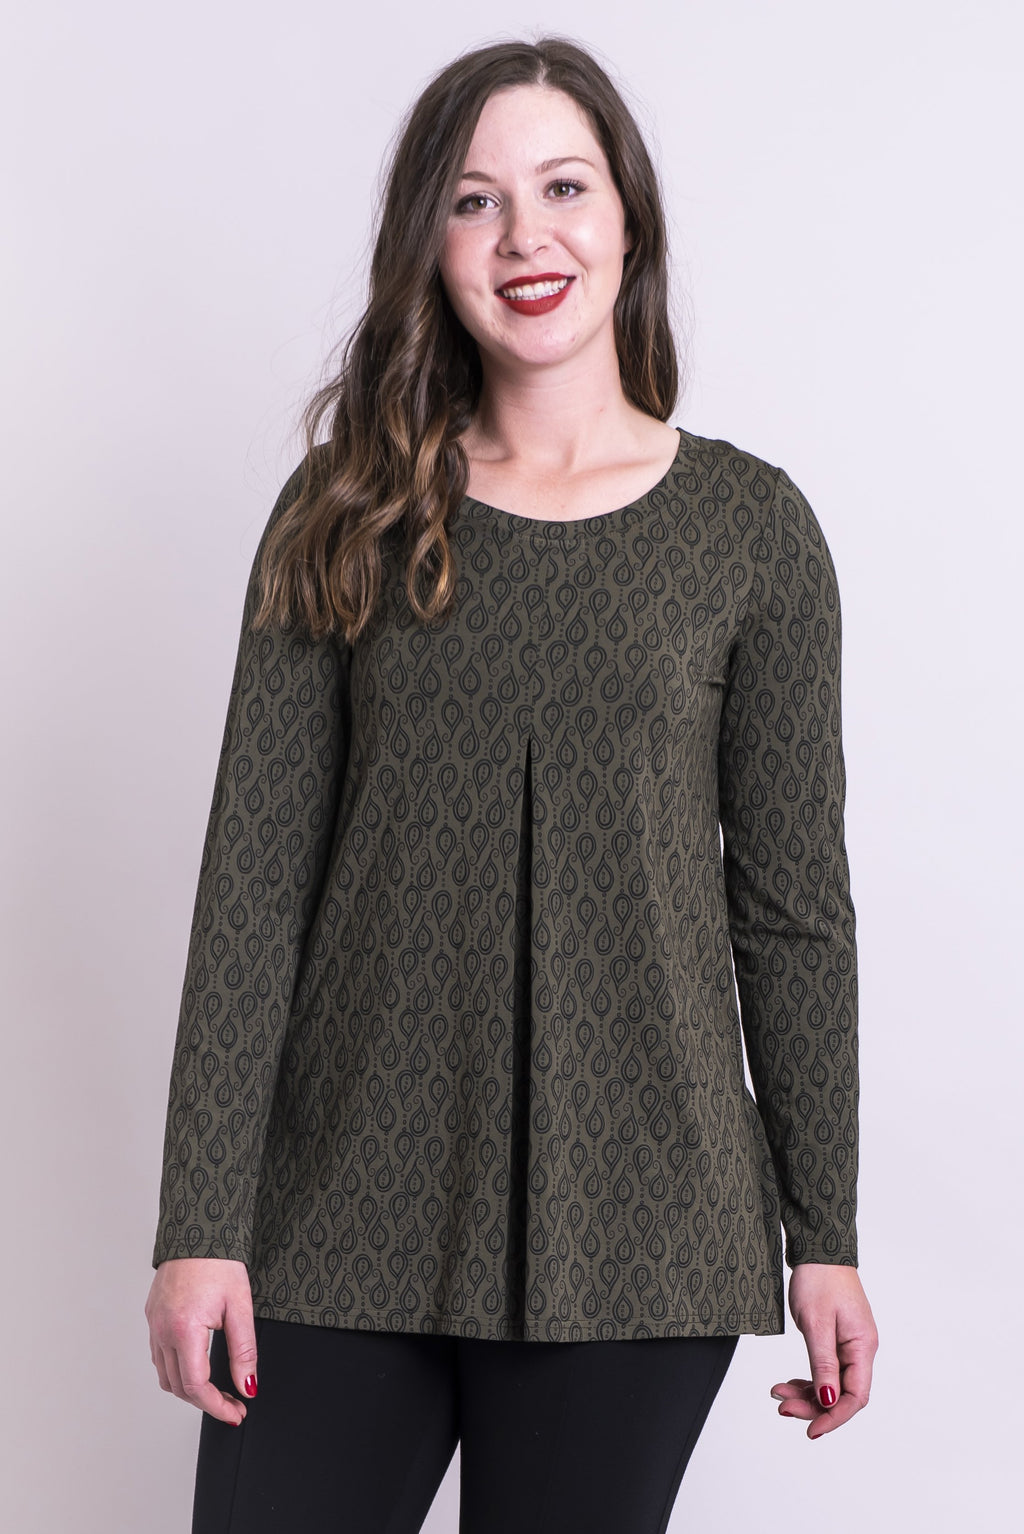 Franca Top, Khaki Chinook, Bamboo - Blue Sky Clothing Co